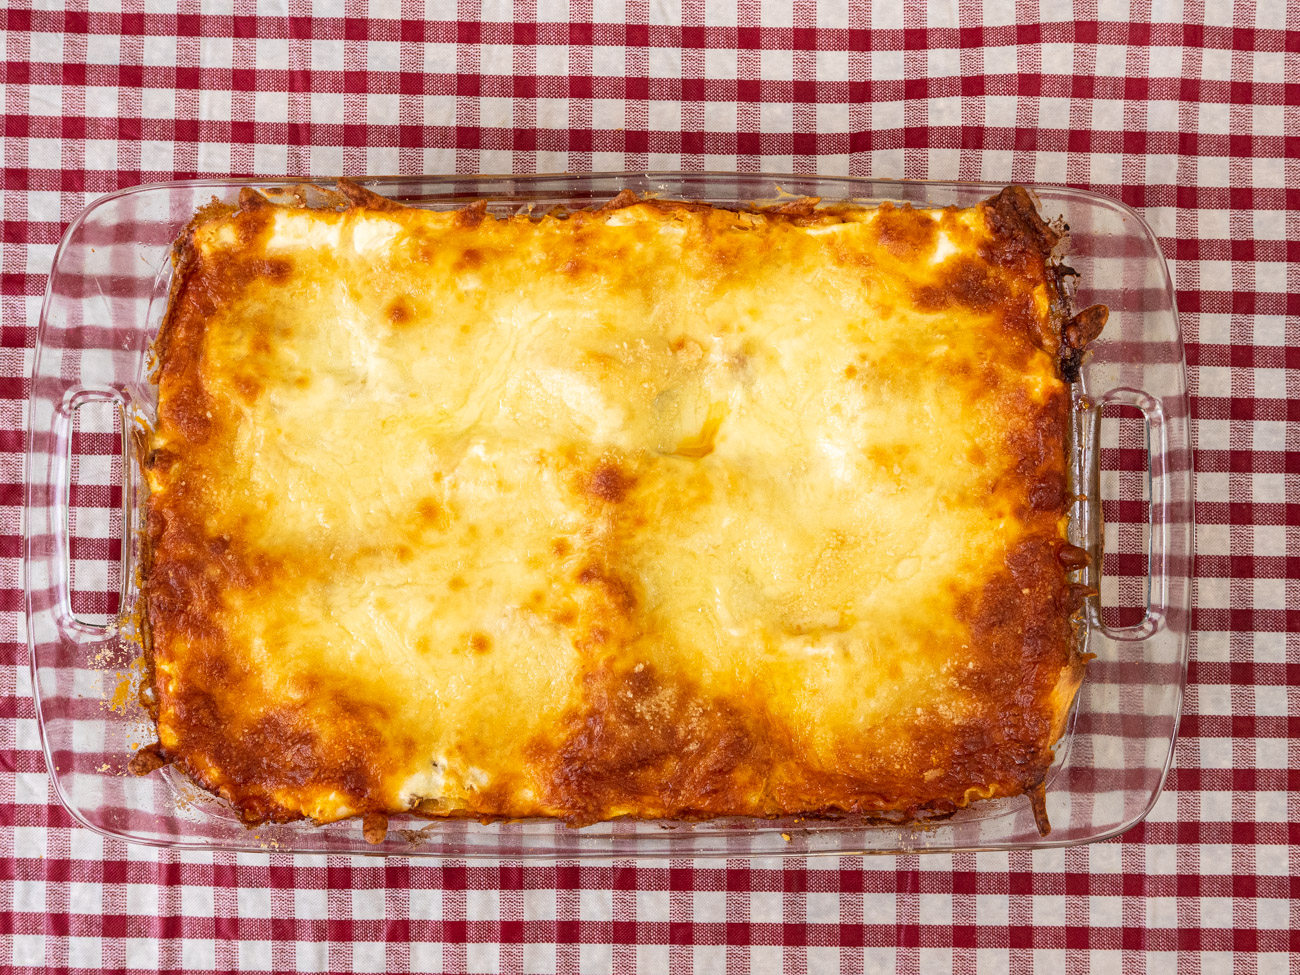 Bake 40 minutes or until cheese is melted and sauce is bubbling. Allow to cool for 15 minutes before serving.